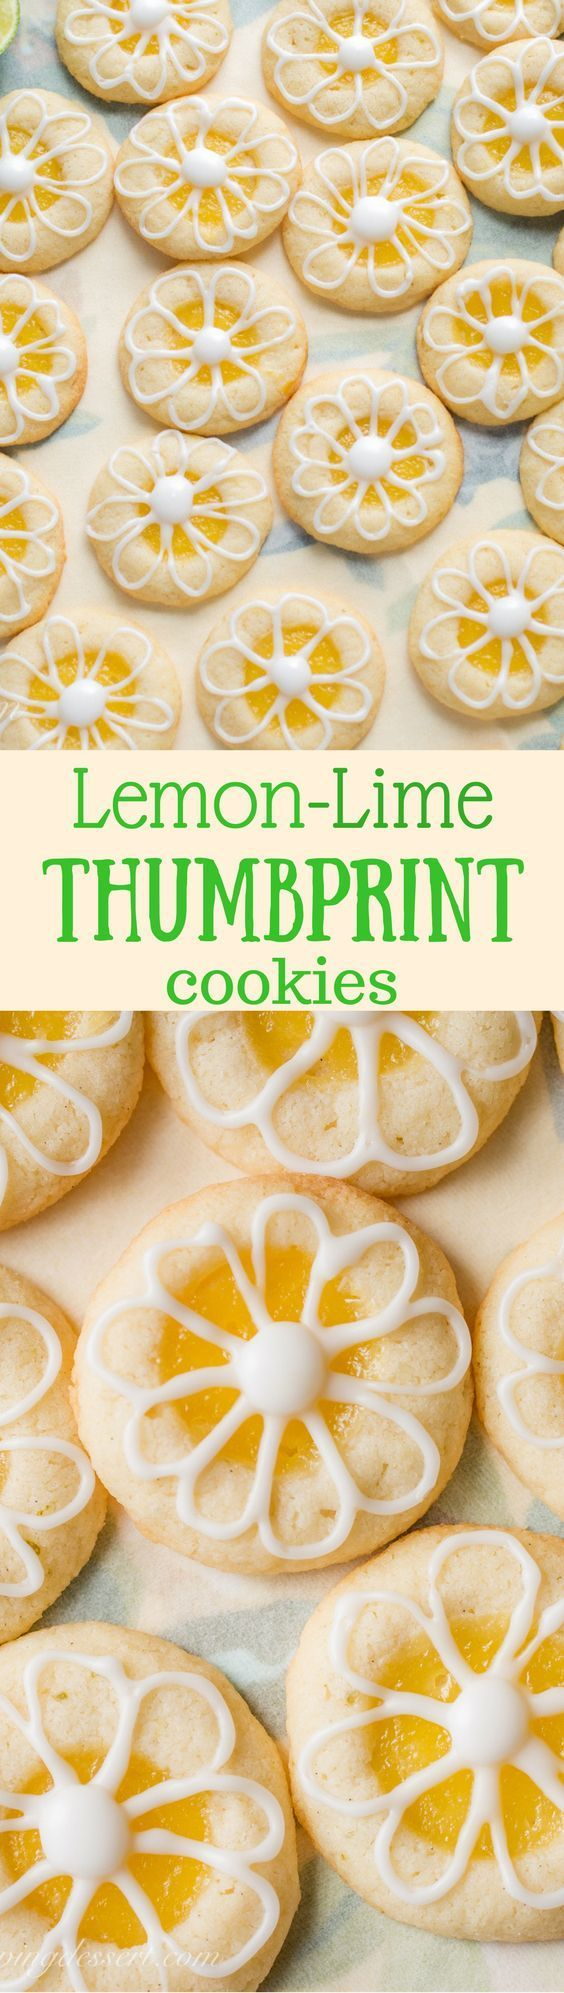 Lemon-Lime Shortbread Thumbprint Cookies filled with homemade Lemon Curd and topped with a simple Lime Icing | http://www.savingdessert.com